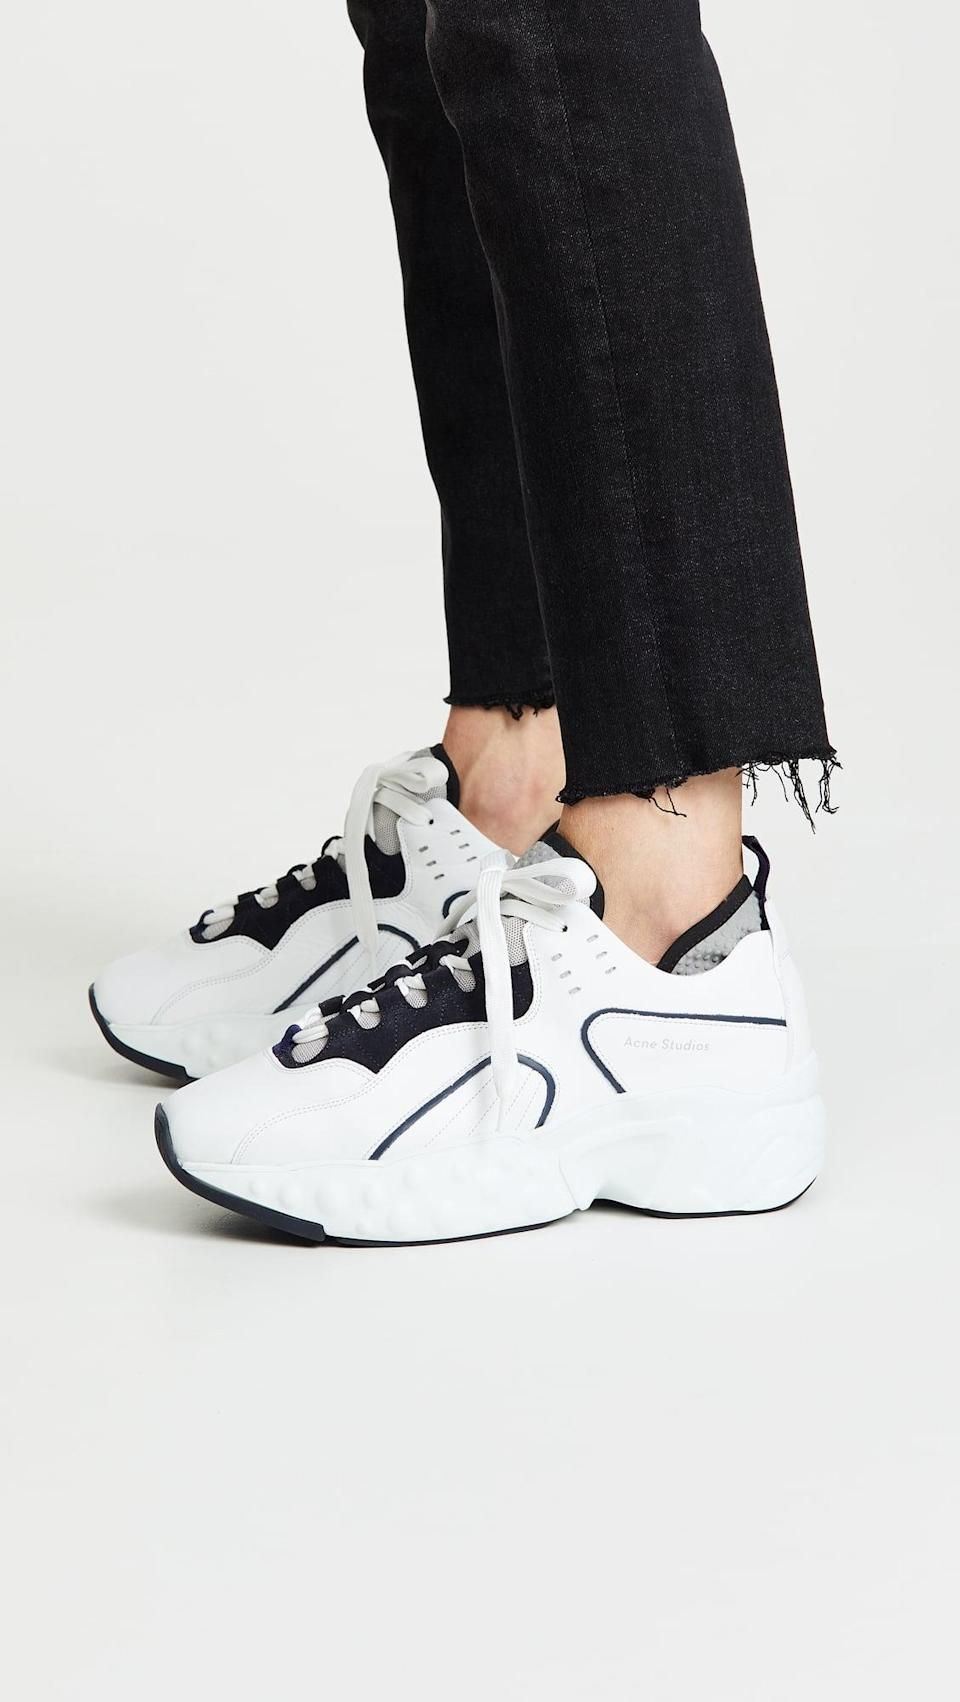 <p>If you're in the market for a chunky white sneaker, the <span>Acne Studios Manhattan</span> ($470) should prove valuable later on. In fact, Vestiaire Collective reports the shoe has highest resell value for 2021.</p>